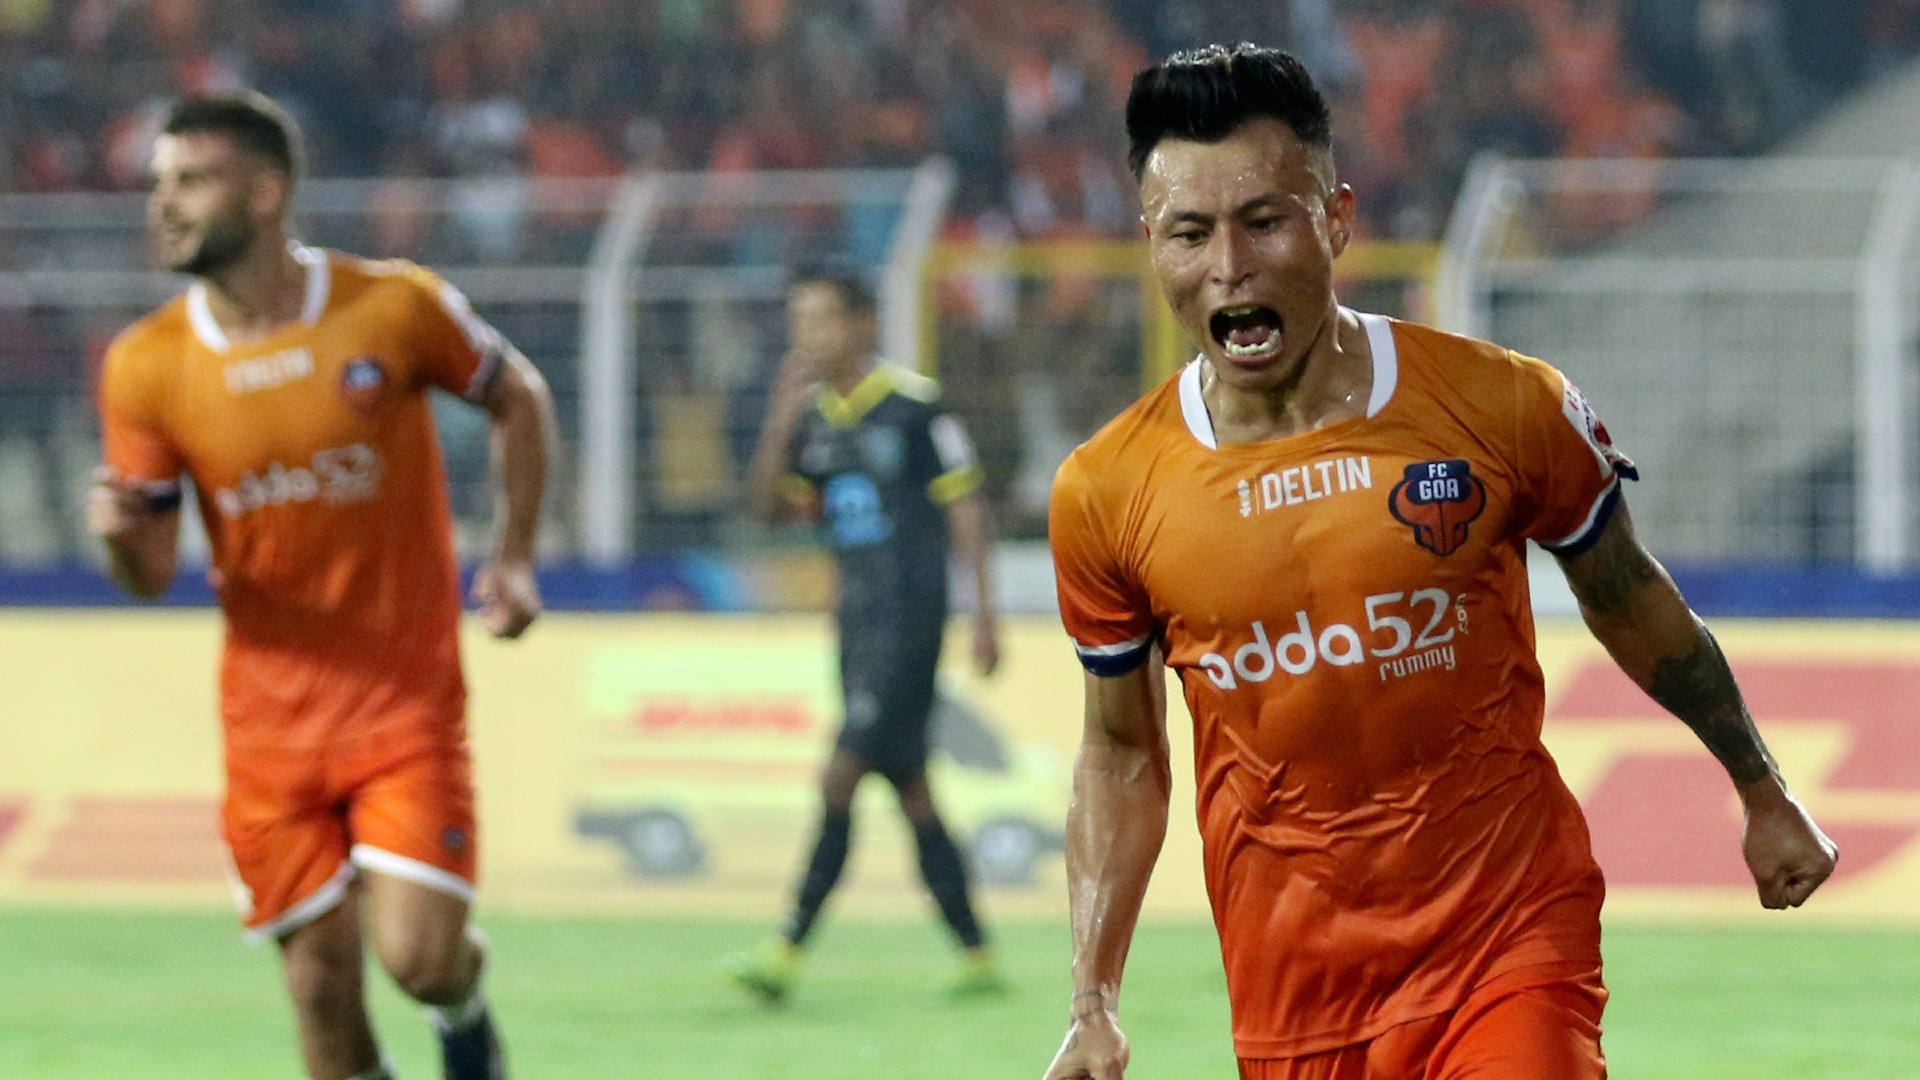 'Jackichand fits our style of play' - Sergio Lobera explains the reasoning behind Jacki-Farukh swap deal with Jamshedpur